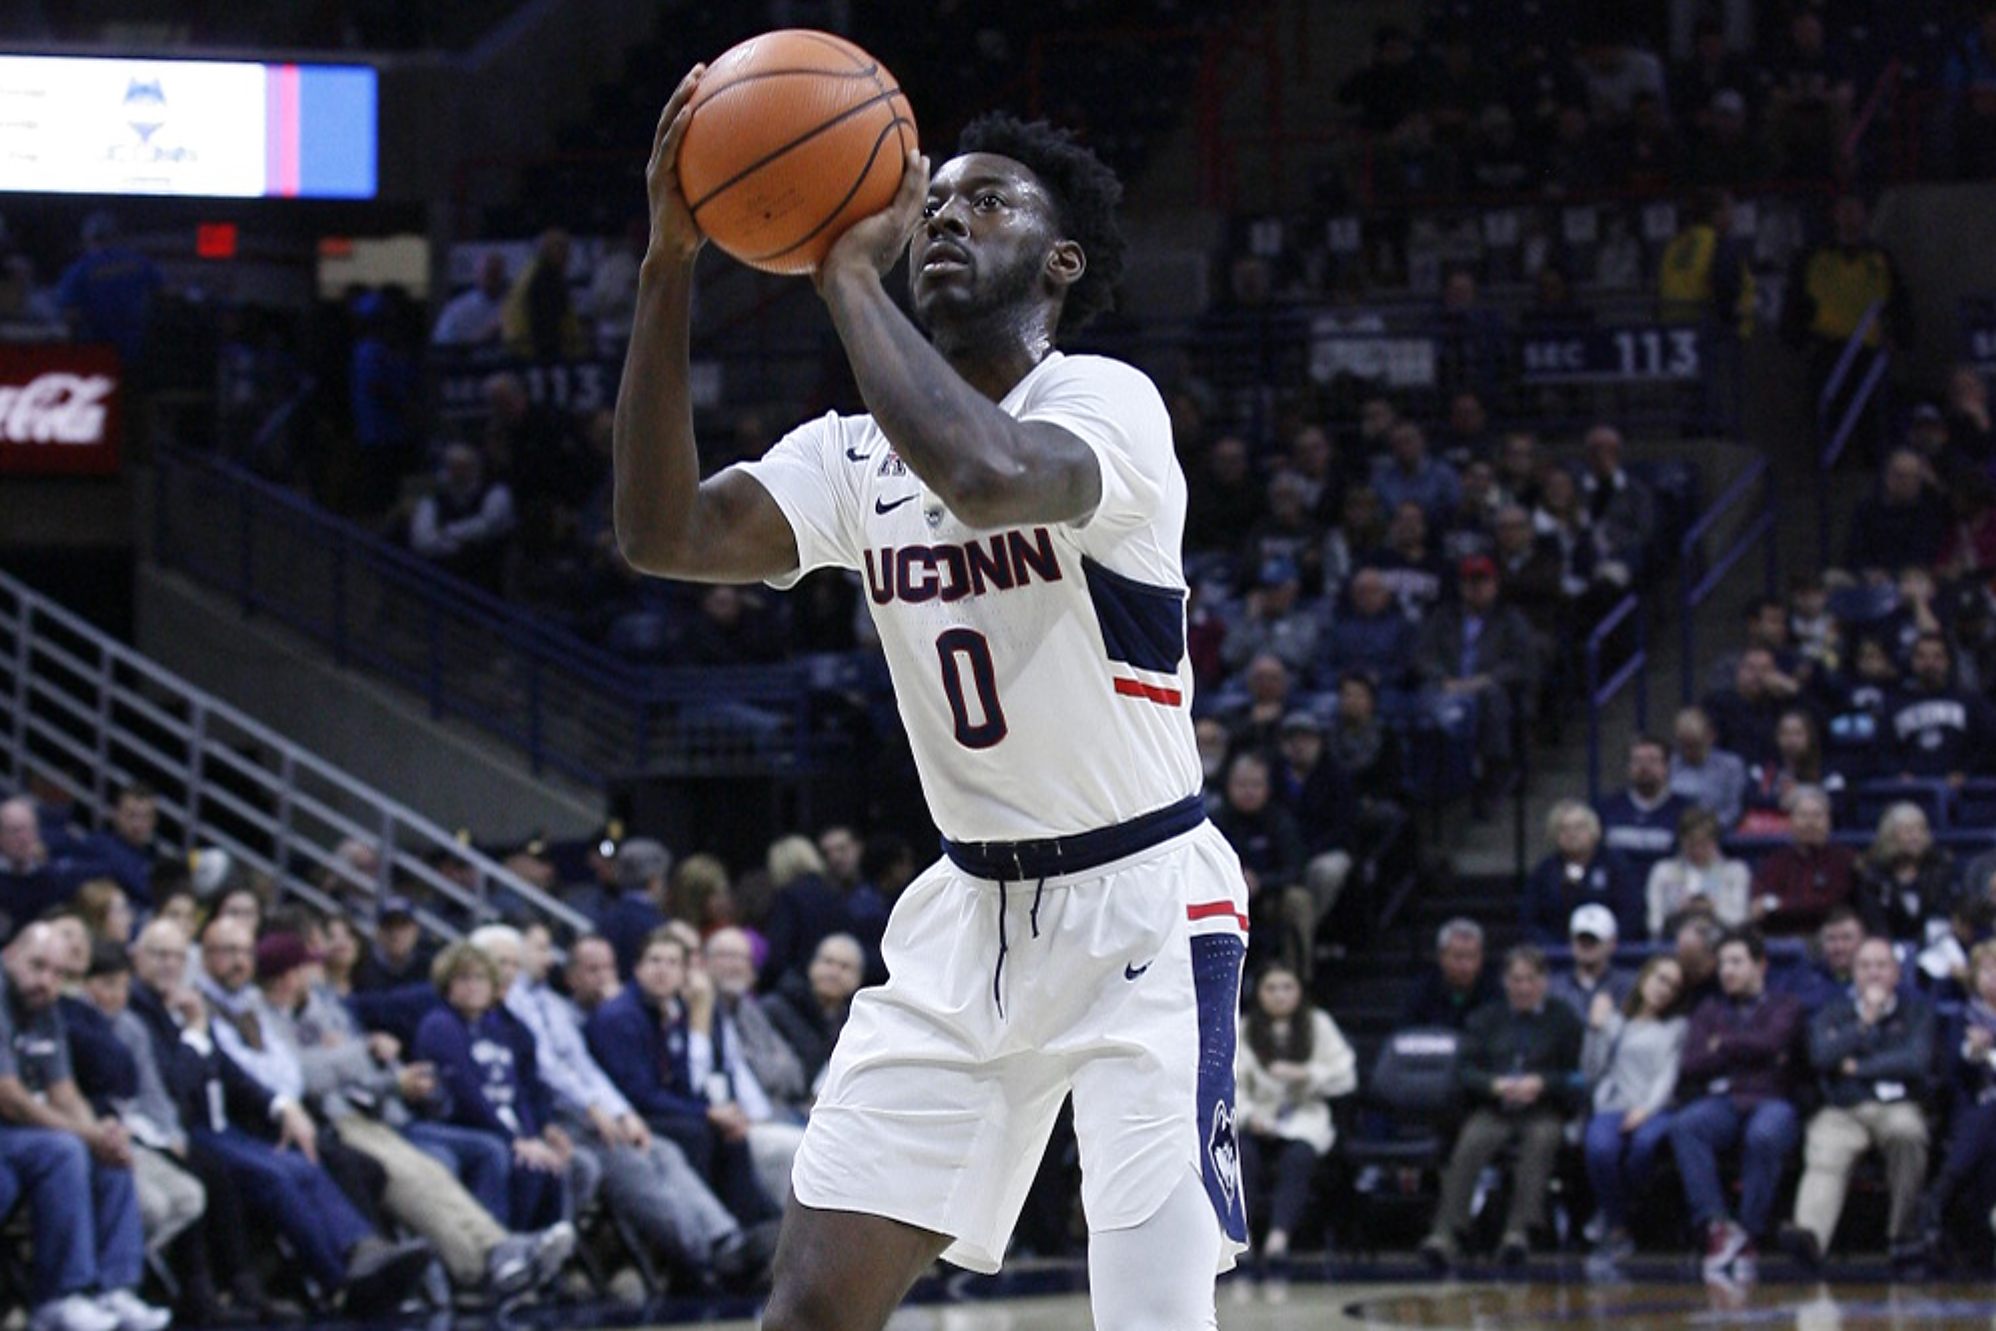 Uconn Men S Basketball Takes Down Smu 63 52 The Uconn Blog